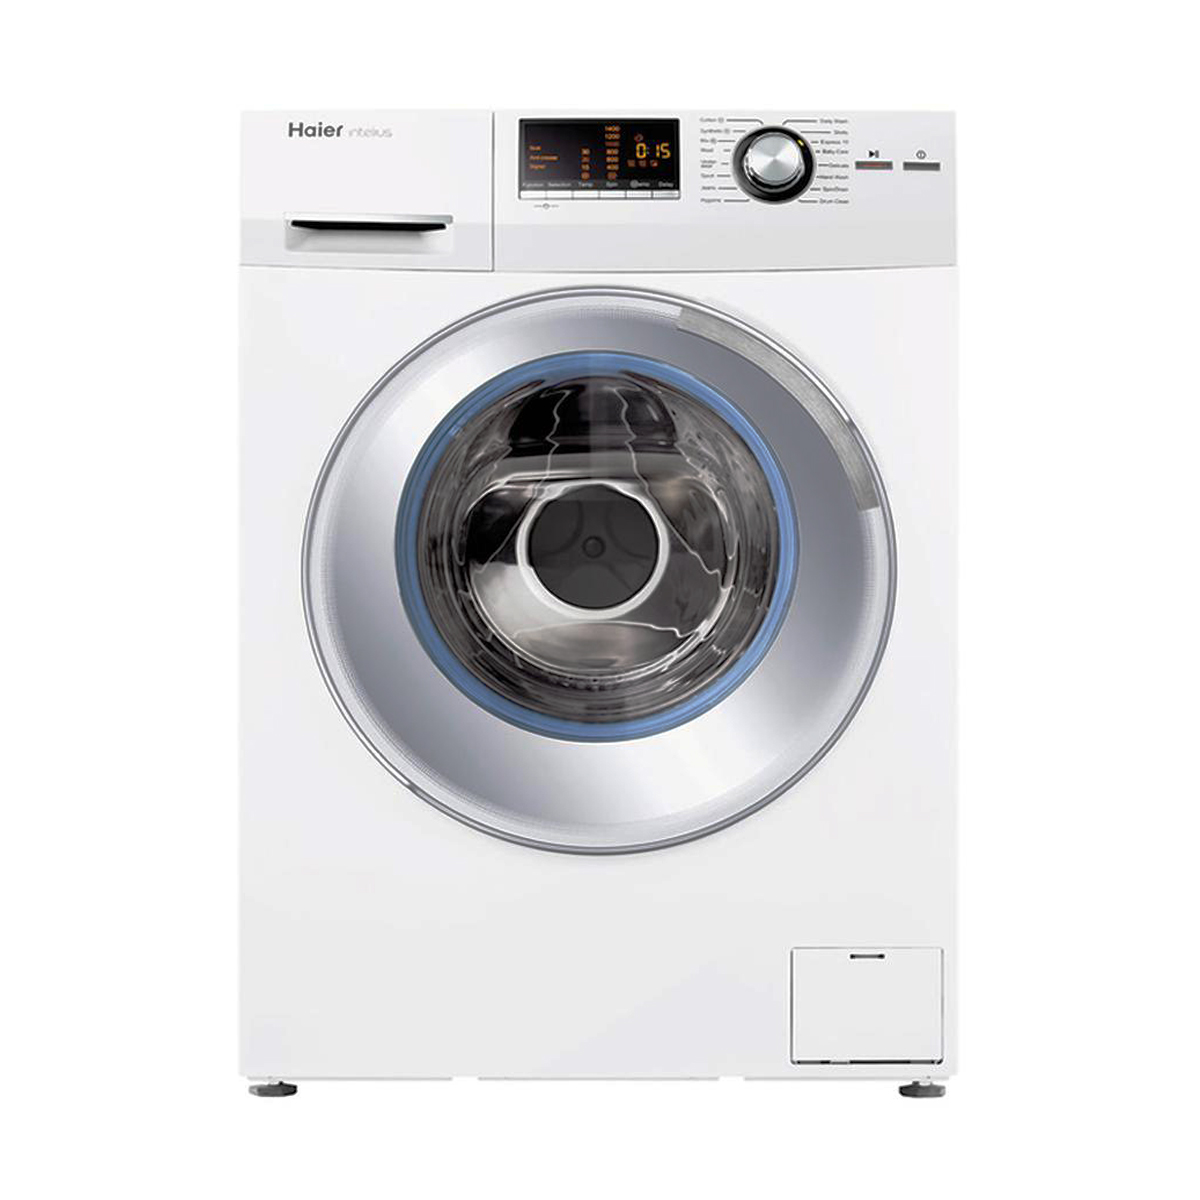 Haier HWM75-B12266 7.5kg Front Load Washing Machine